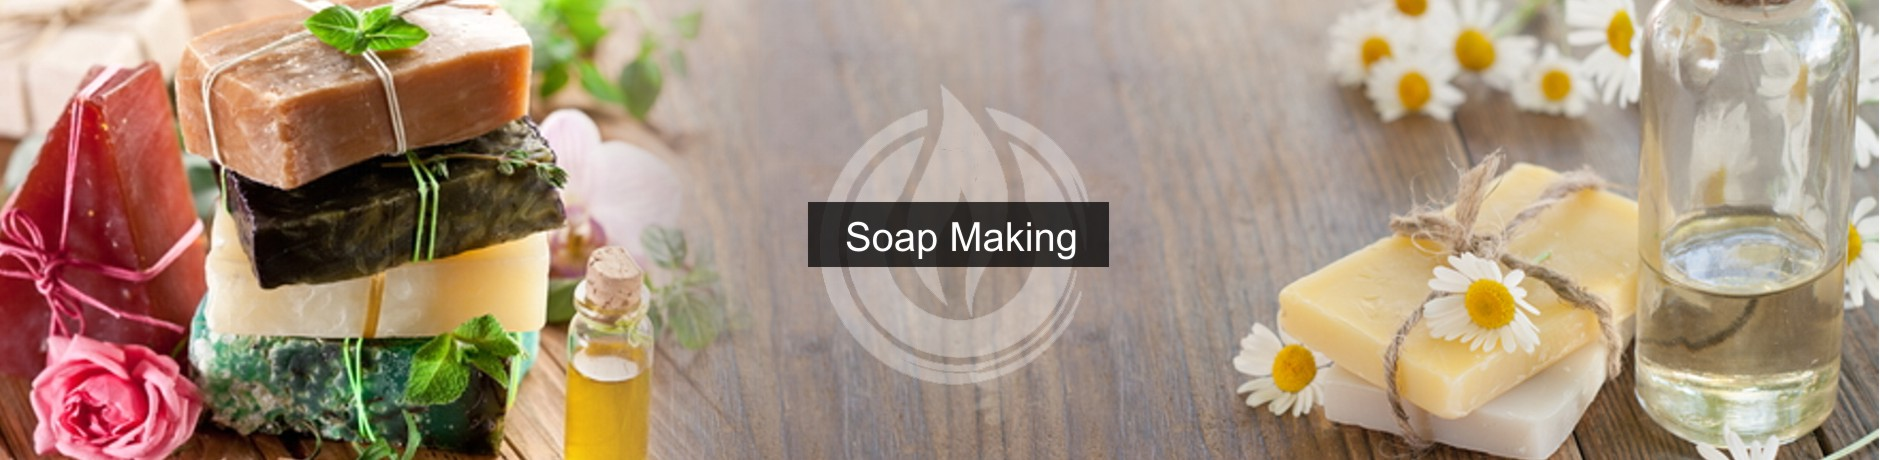 soap-making.jpg